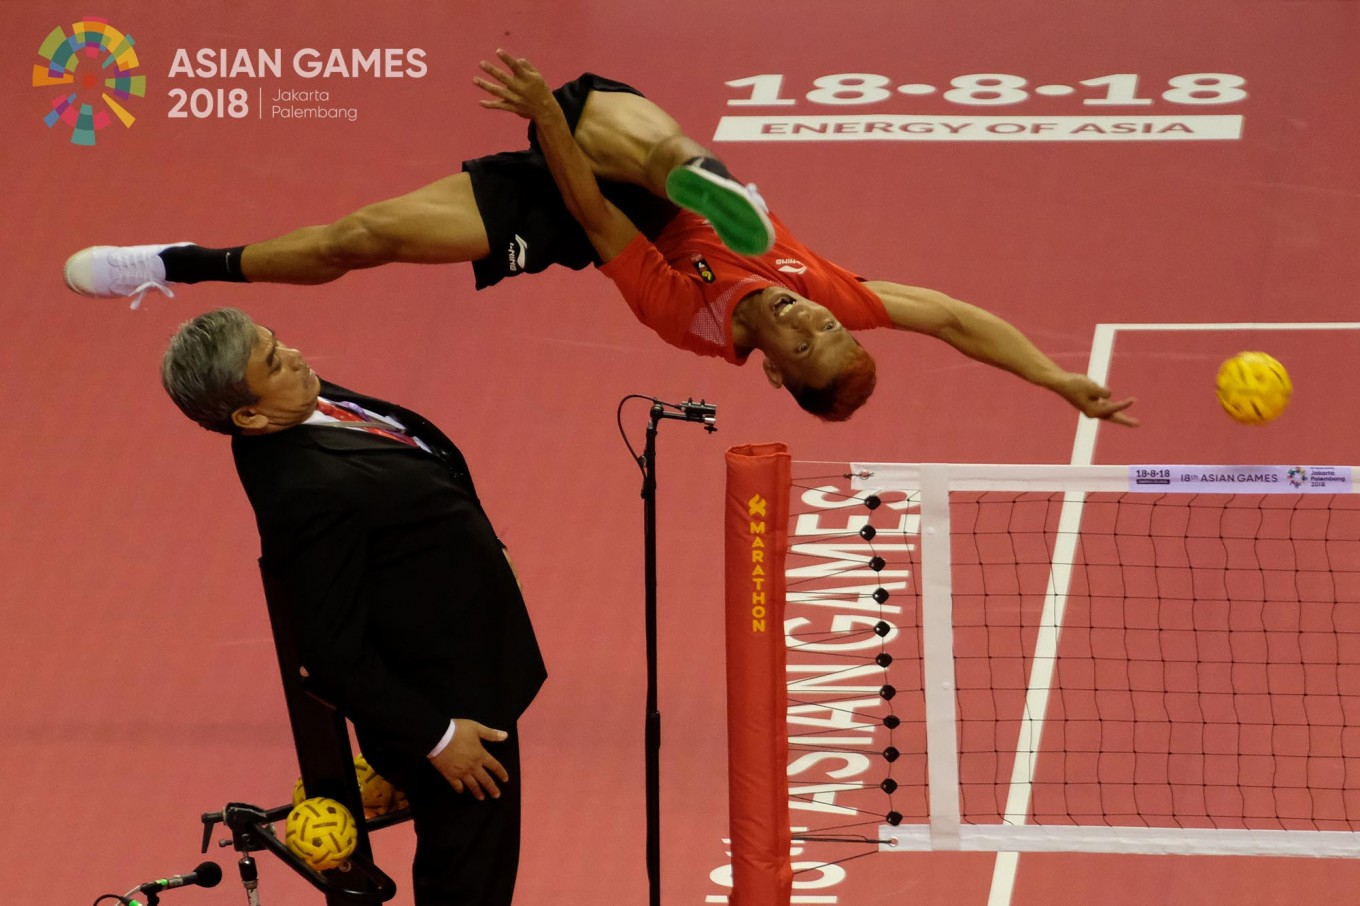 Indonesia's Herson Muhamad Saipul  jump for the ball in the sepaktakraw men's team regu match against Iran in Jakabaring Sport City, Palembang, August.19. JP/Jerry Adiguna